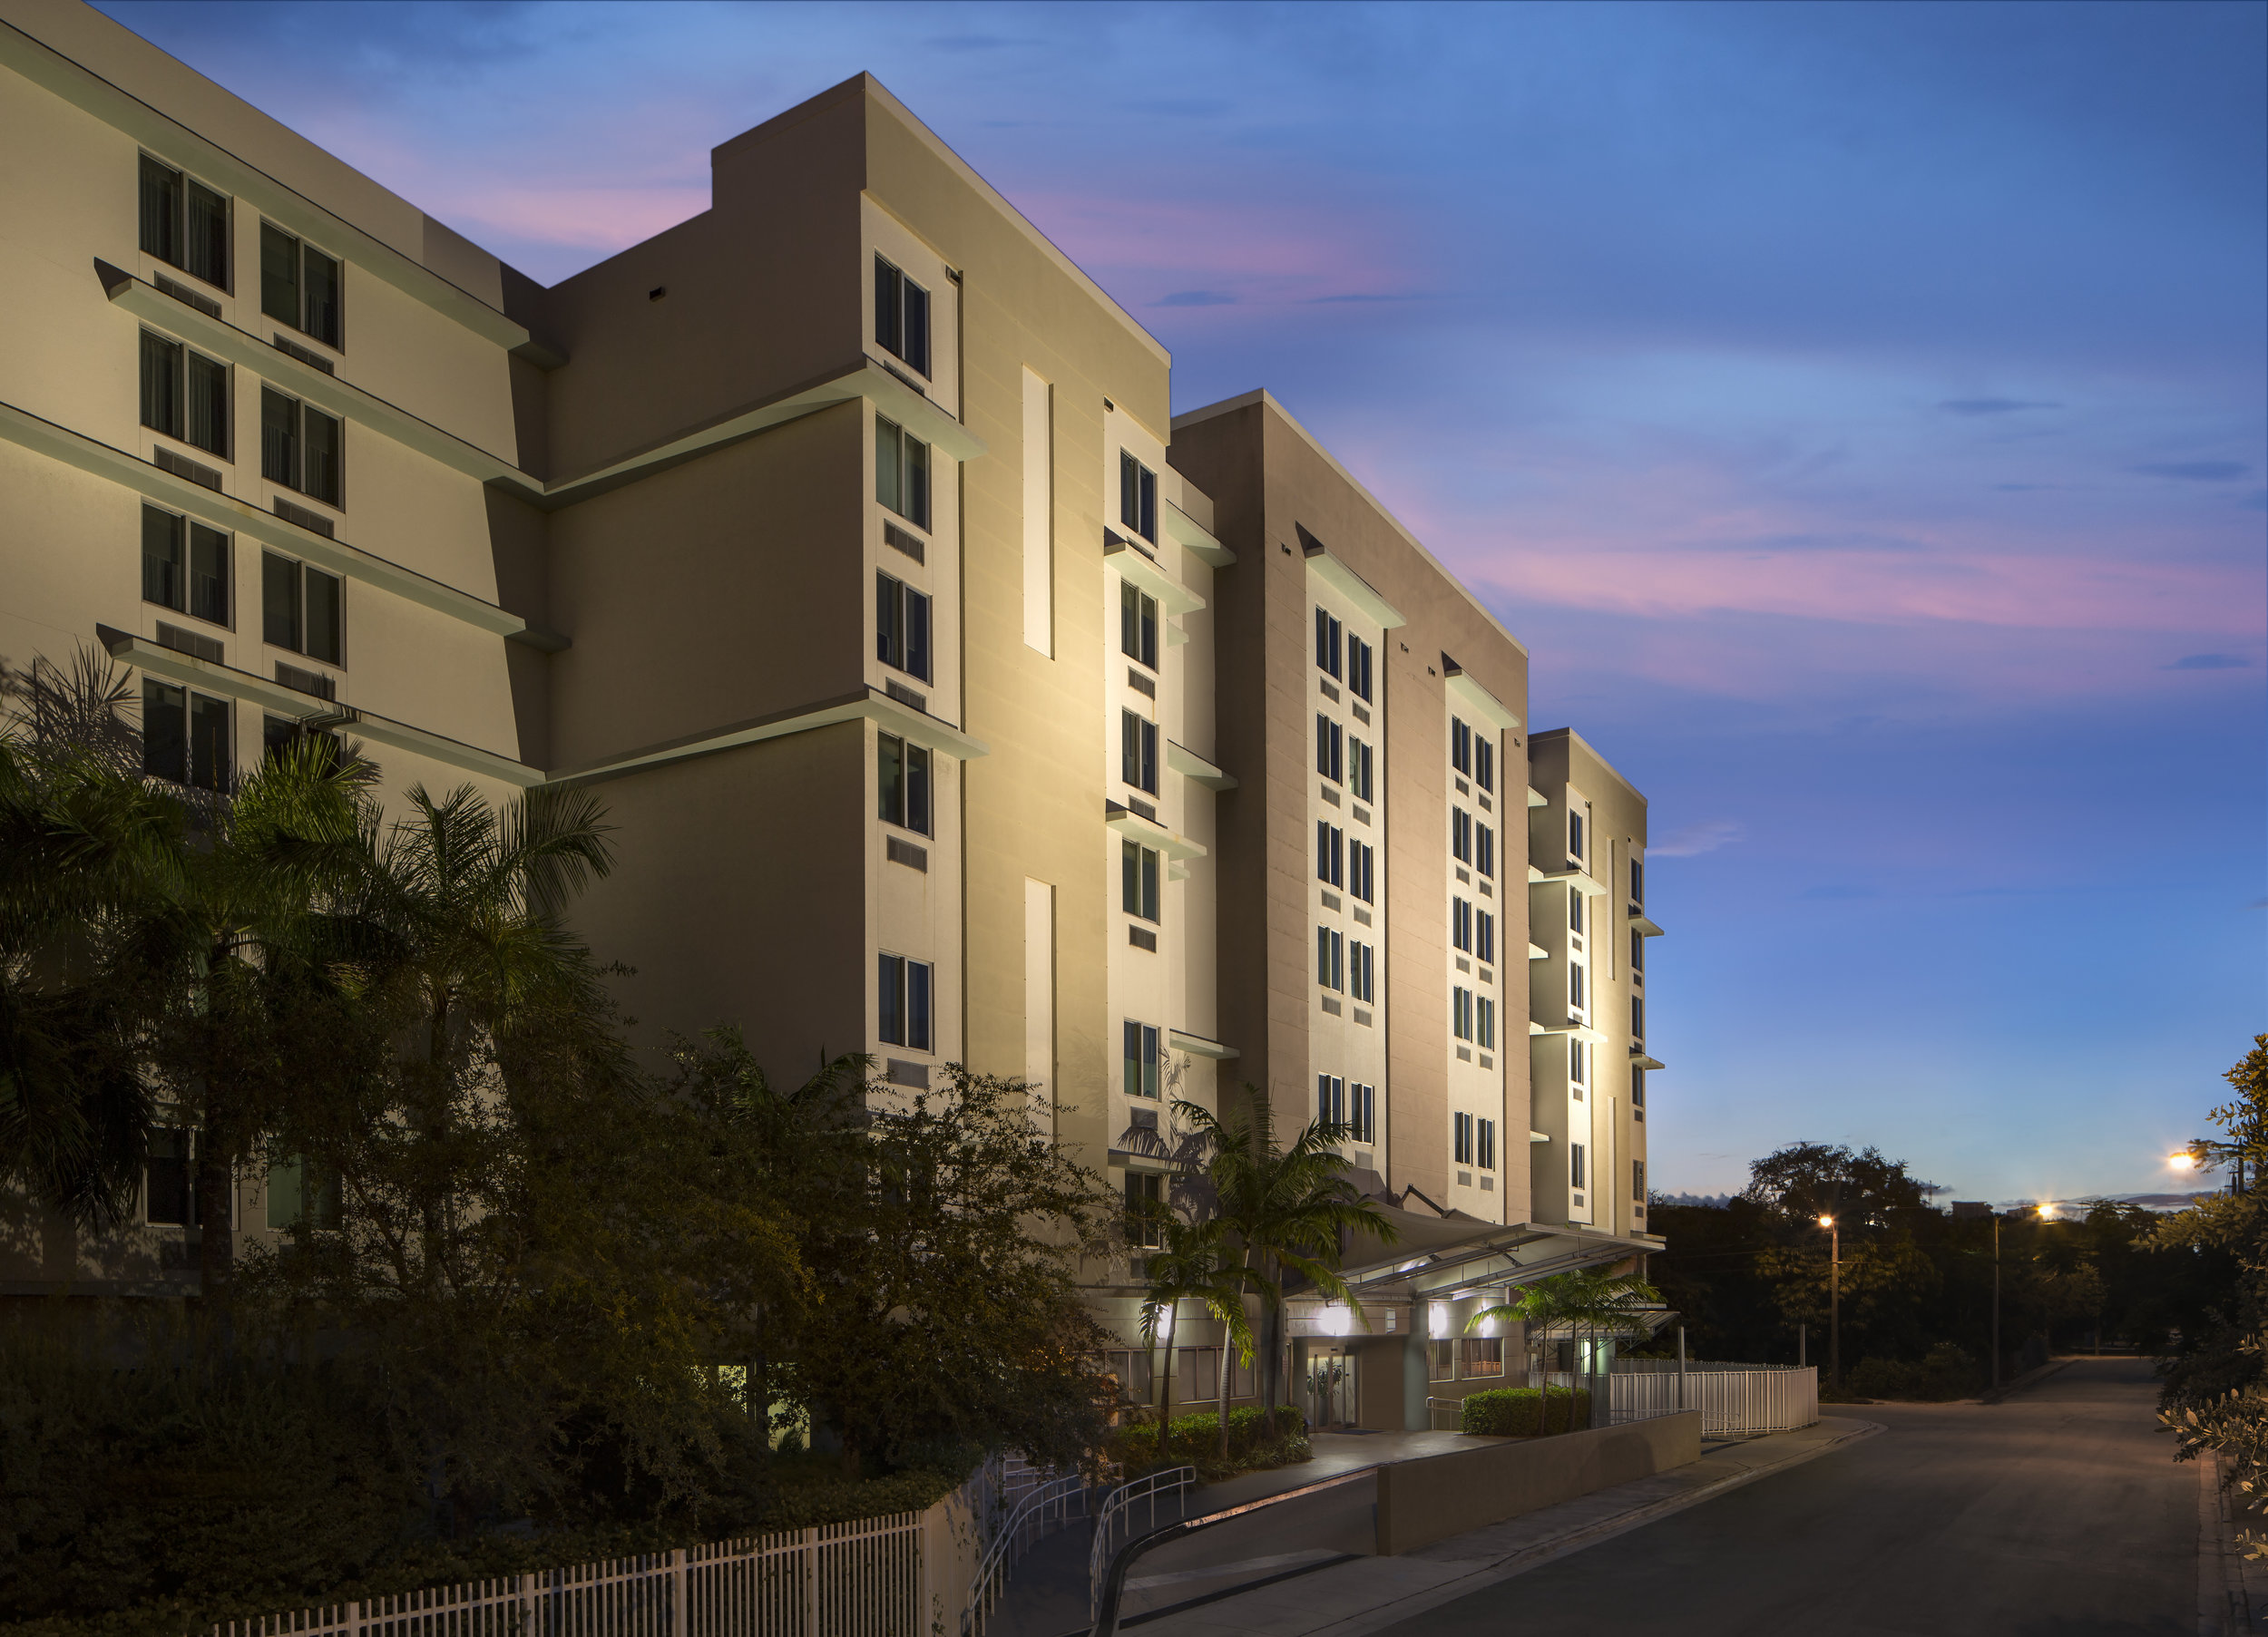 Springhill Suites by Marriott – Miami